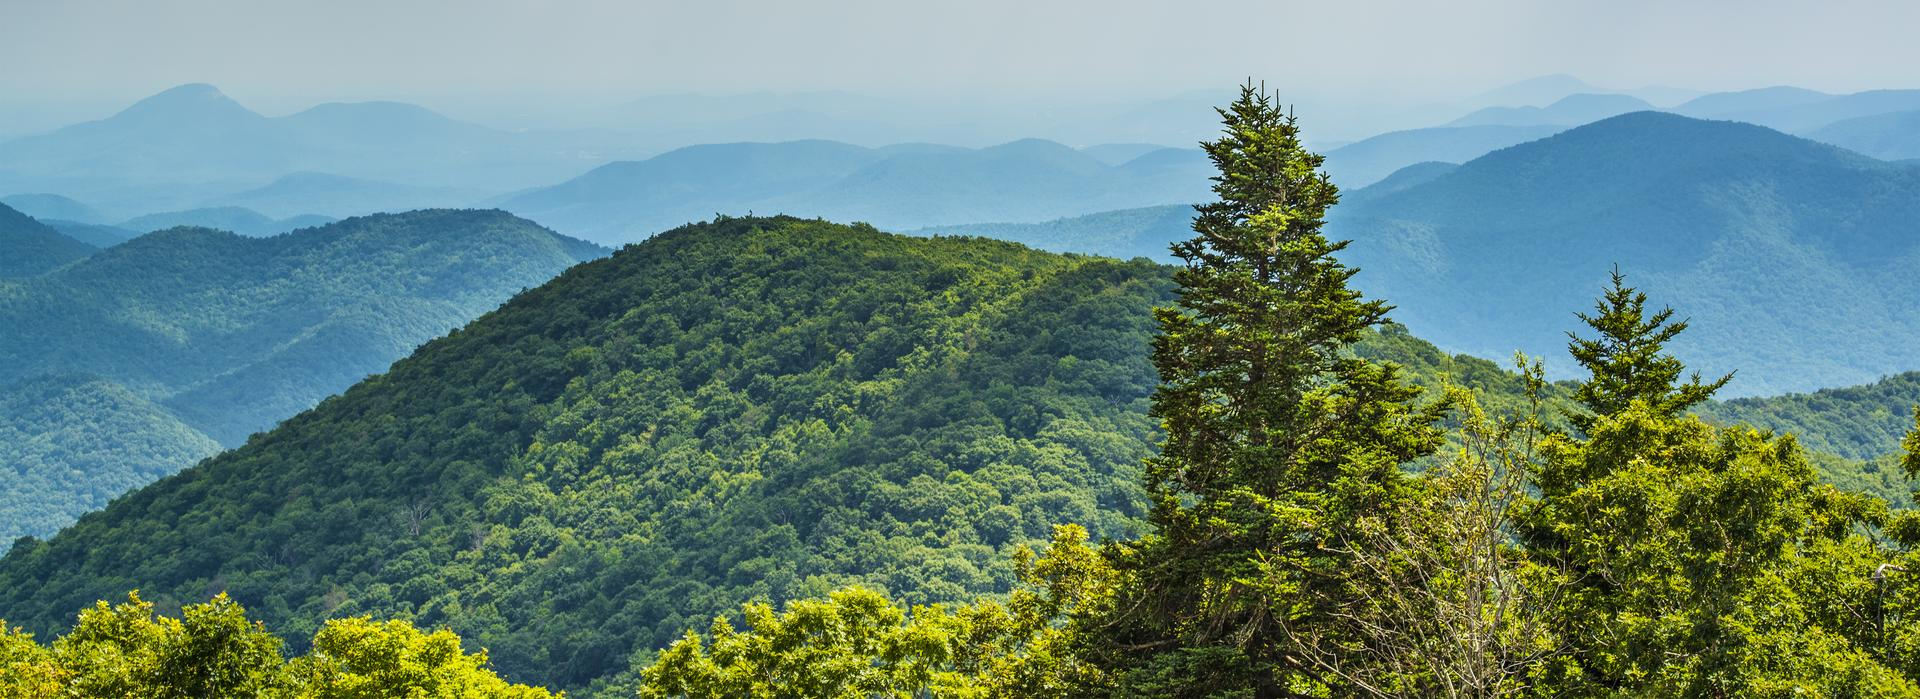 north-georgia-mountains-outdoors-shutterstock_cropped